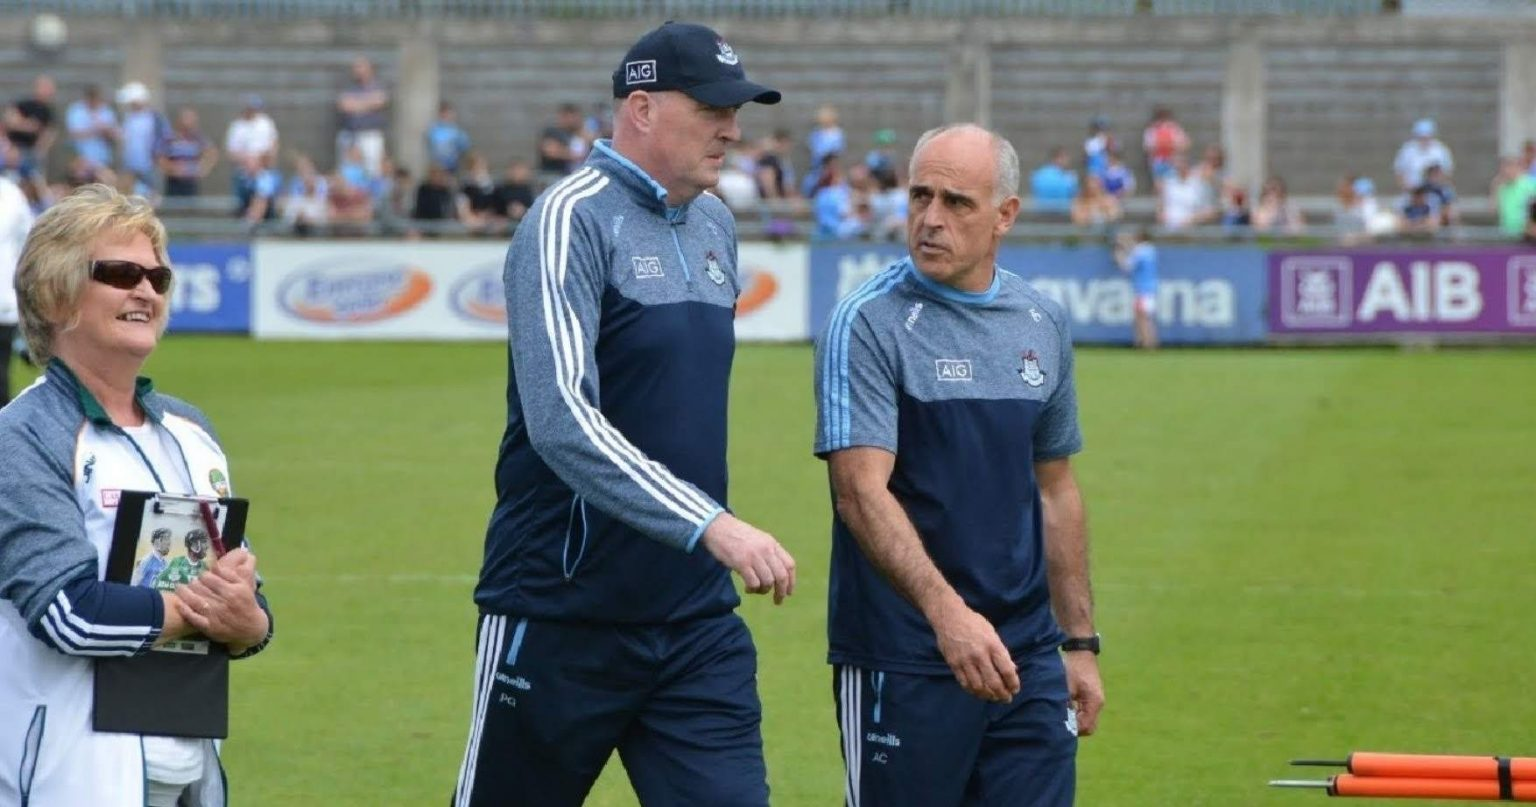 Dublin Senior Hurlers In Good Shape After Gilroy's Maiden Voyage